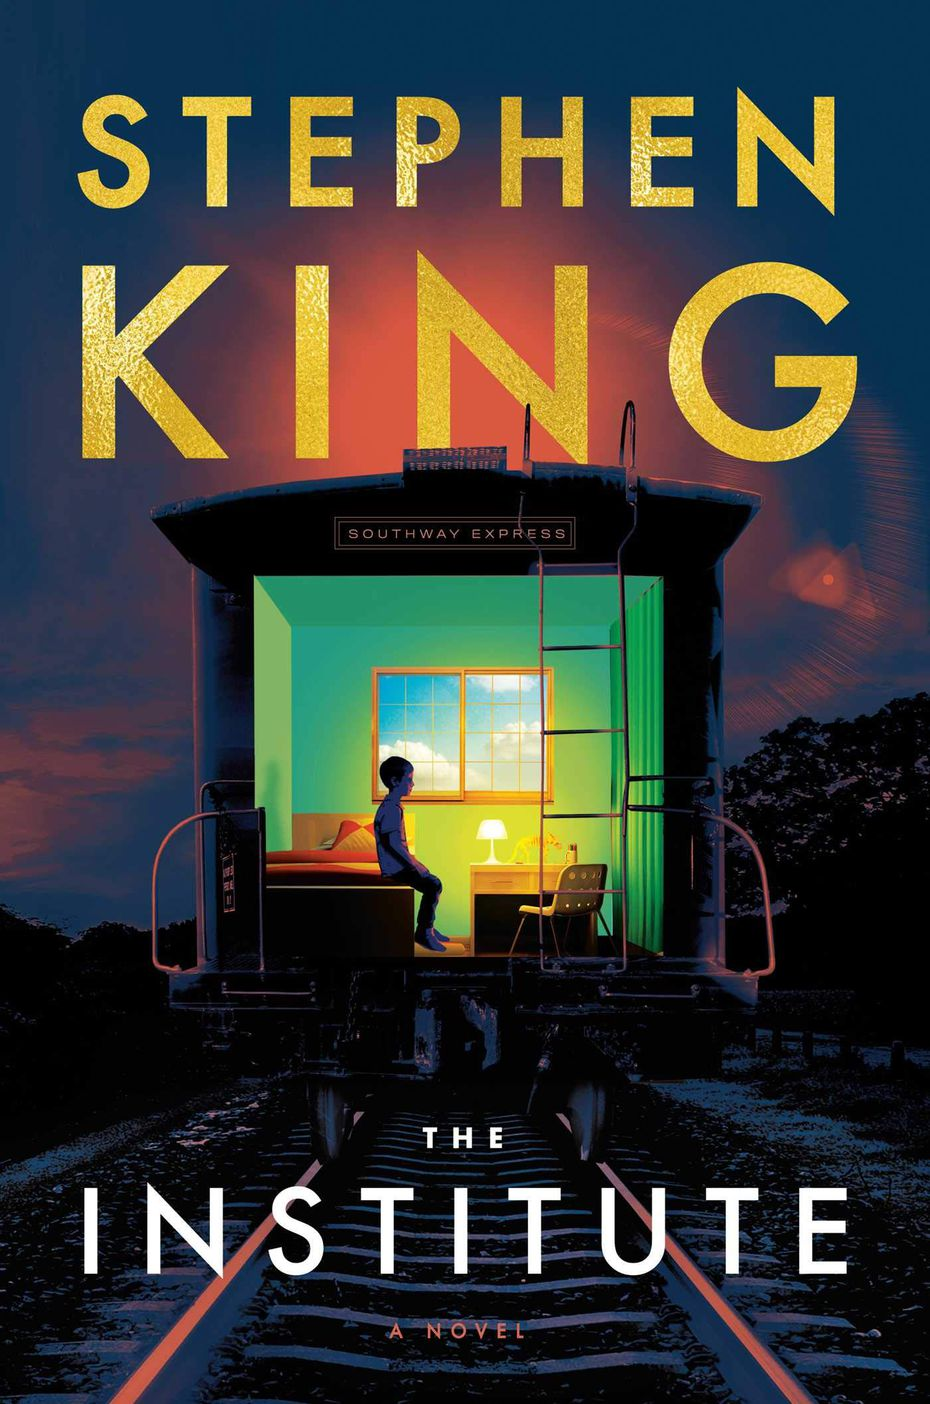 """The Institute"" by Stephen King focuses on the inhumane treatment of children — in this case, children with special abilities."